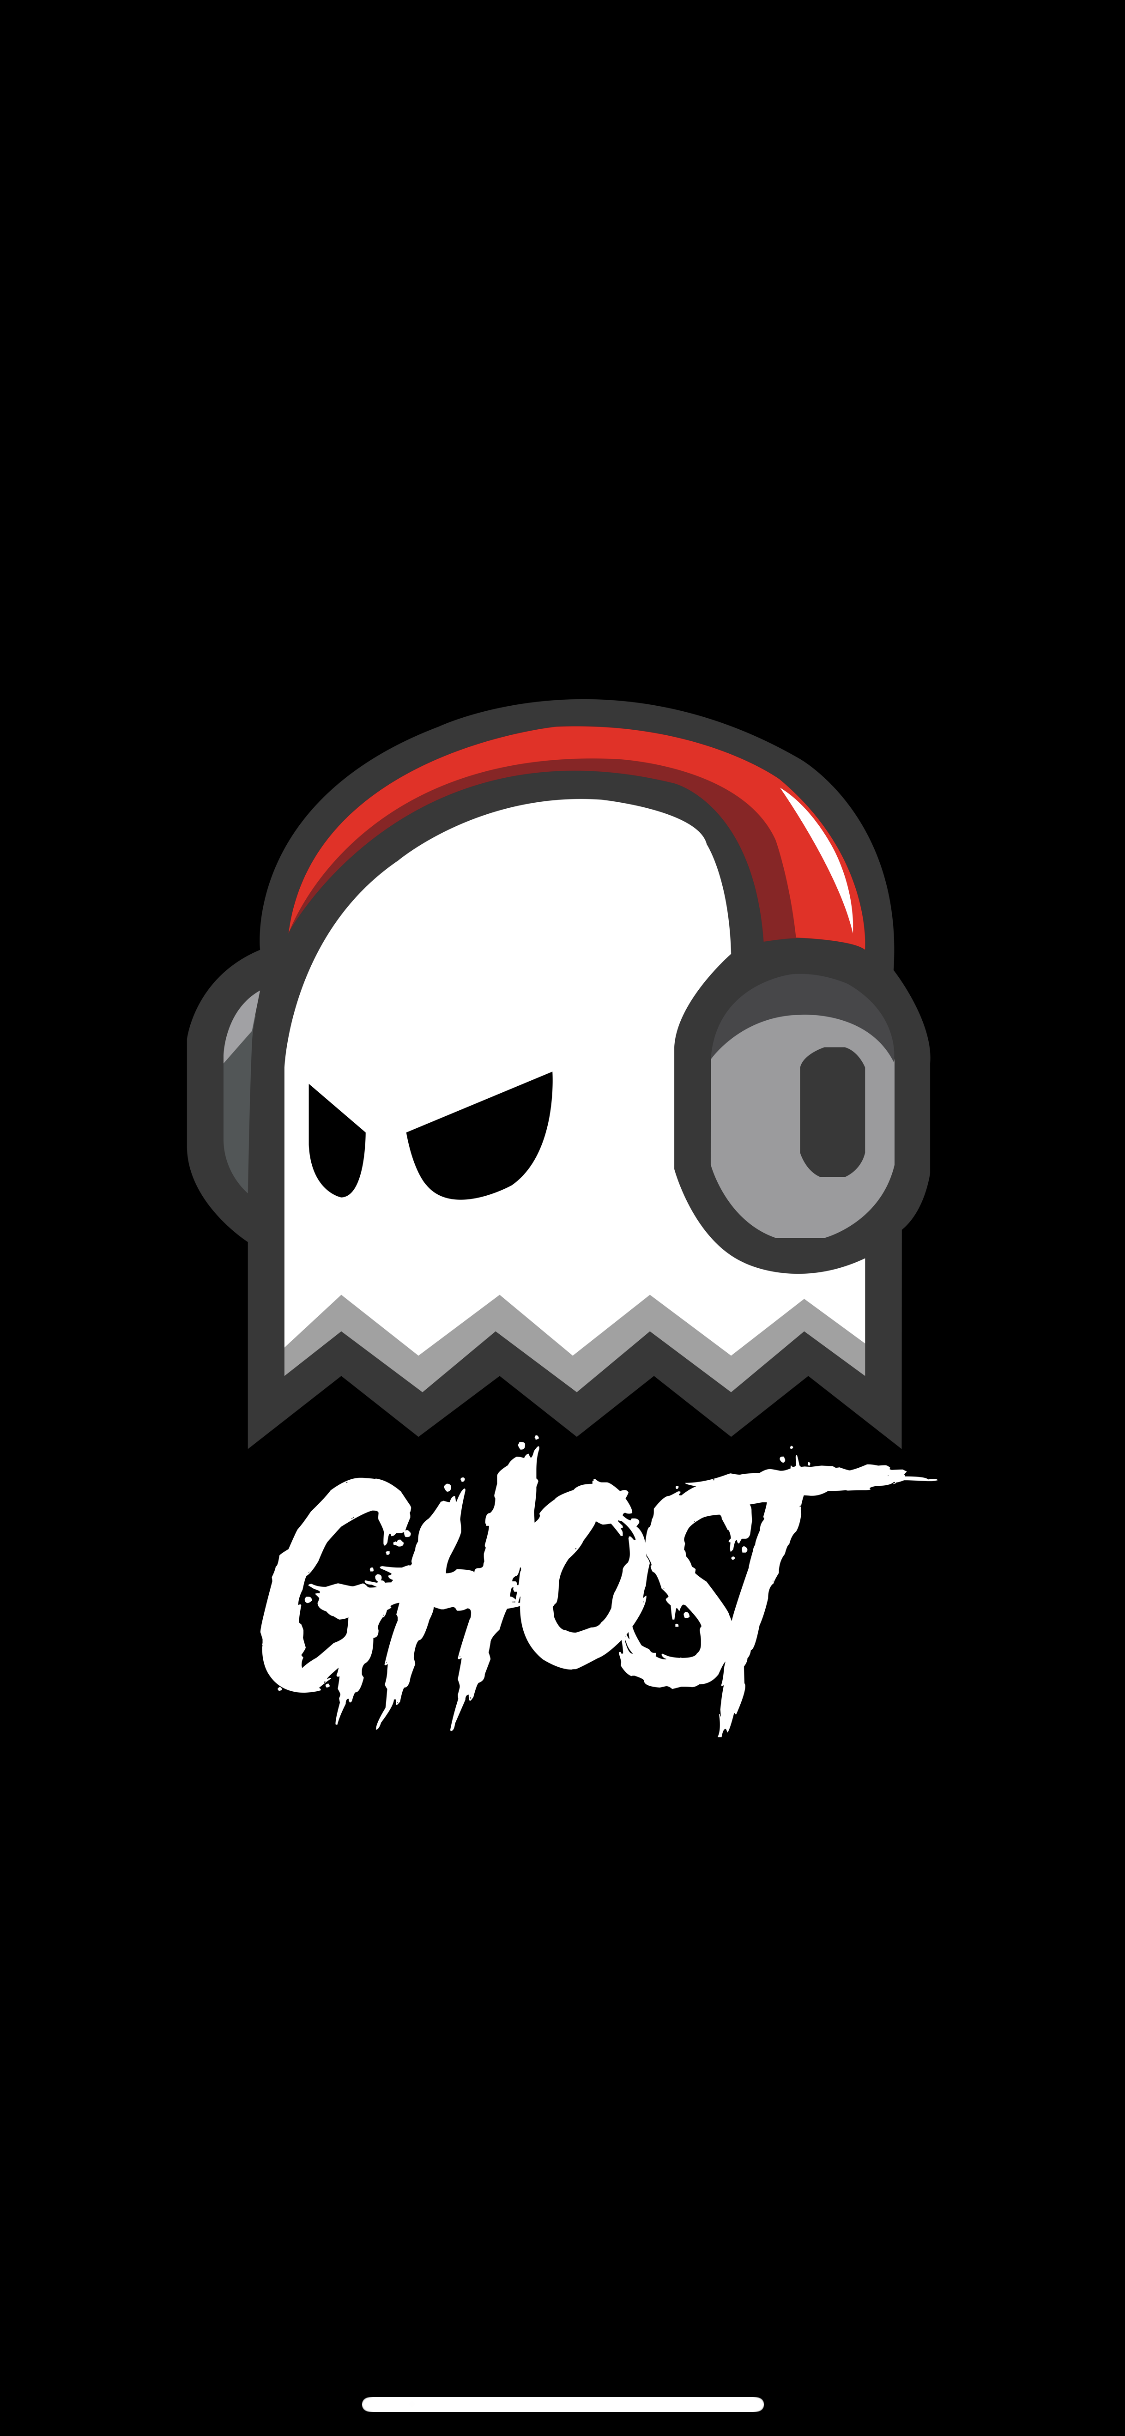 Ghost Gaming Cyberpunk Character Logo Design Ghost Games